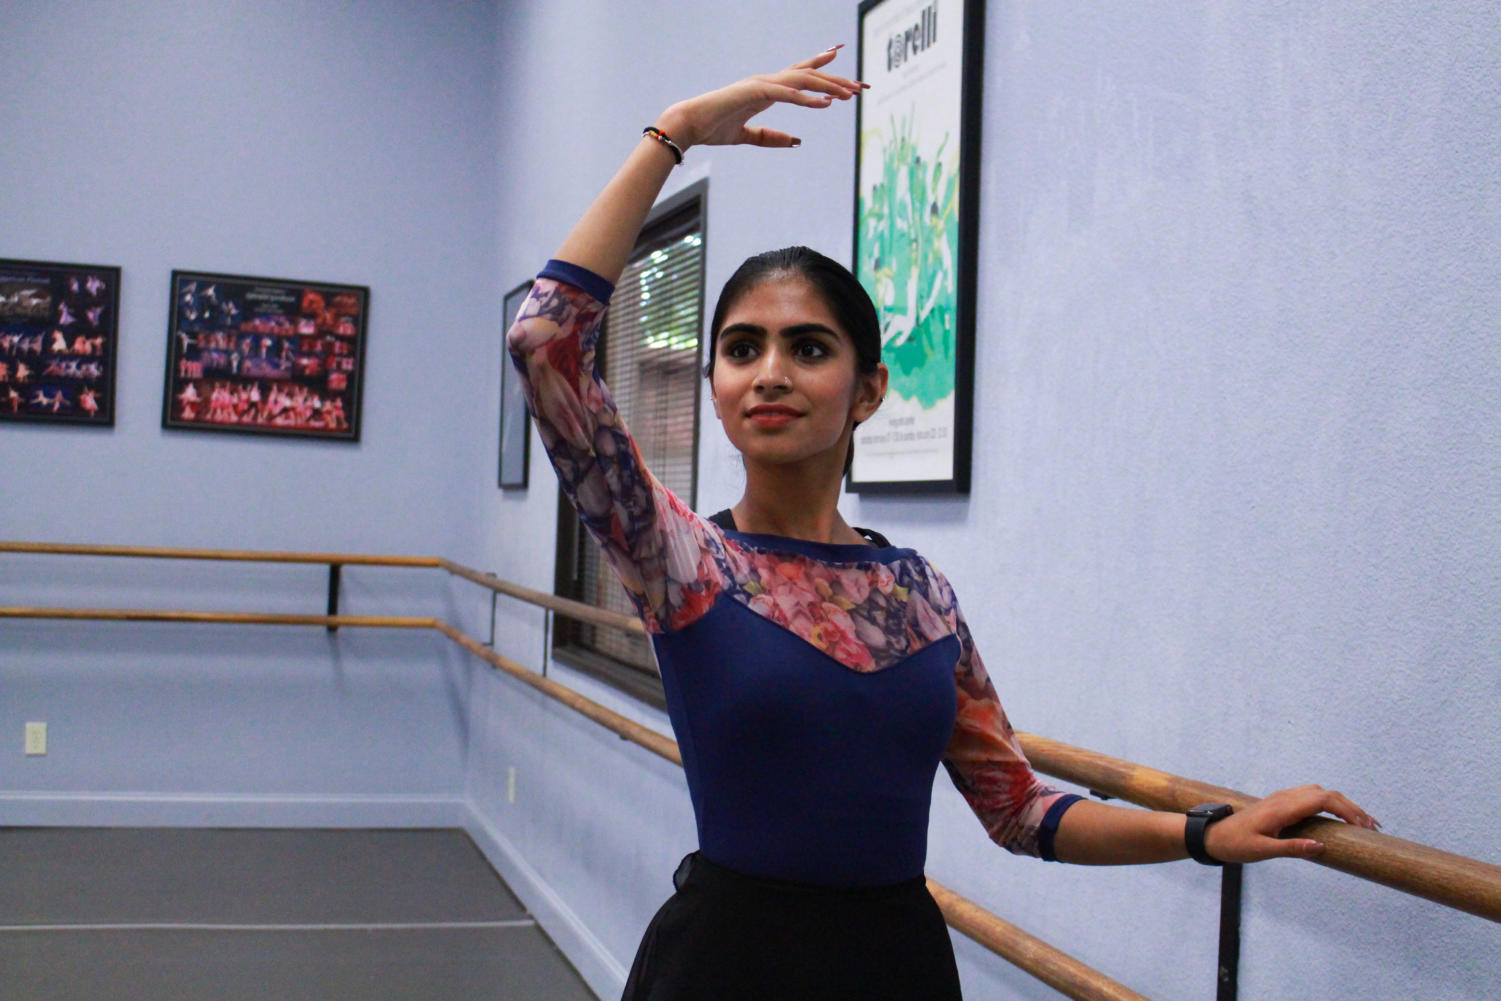 Coppell High School senior Advaita Chaudhari takes a ballet class at Ballet Academy of Texas. Chaudhari takes Indian classical dance, ballet, yoga and BollyX classes, finding comfort and passion in multiple forms of the art.